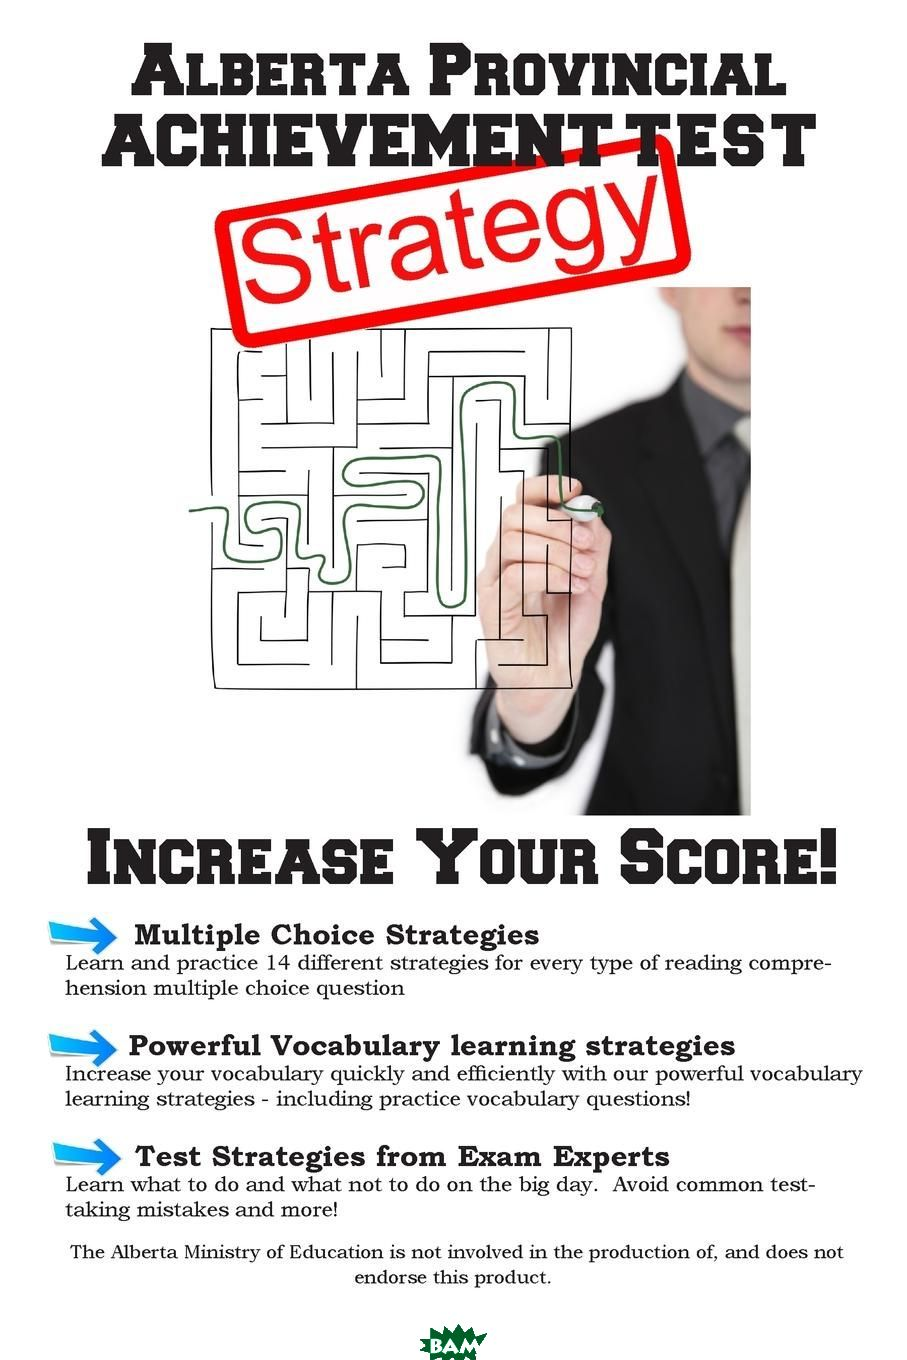 Alberta Provincial Achievement Test Strategy. Winning Multiple Choice Strategies for the Alberta Provincial Achievement Test